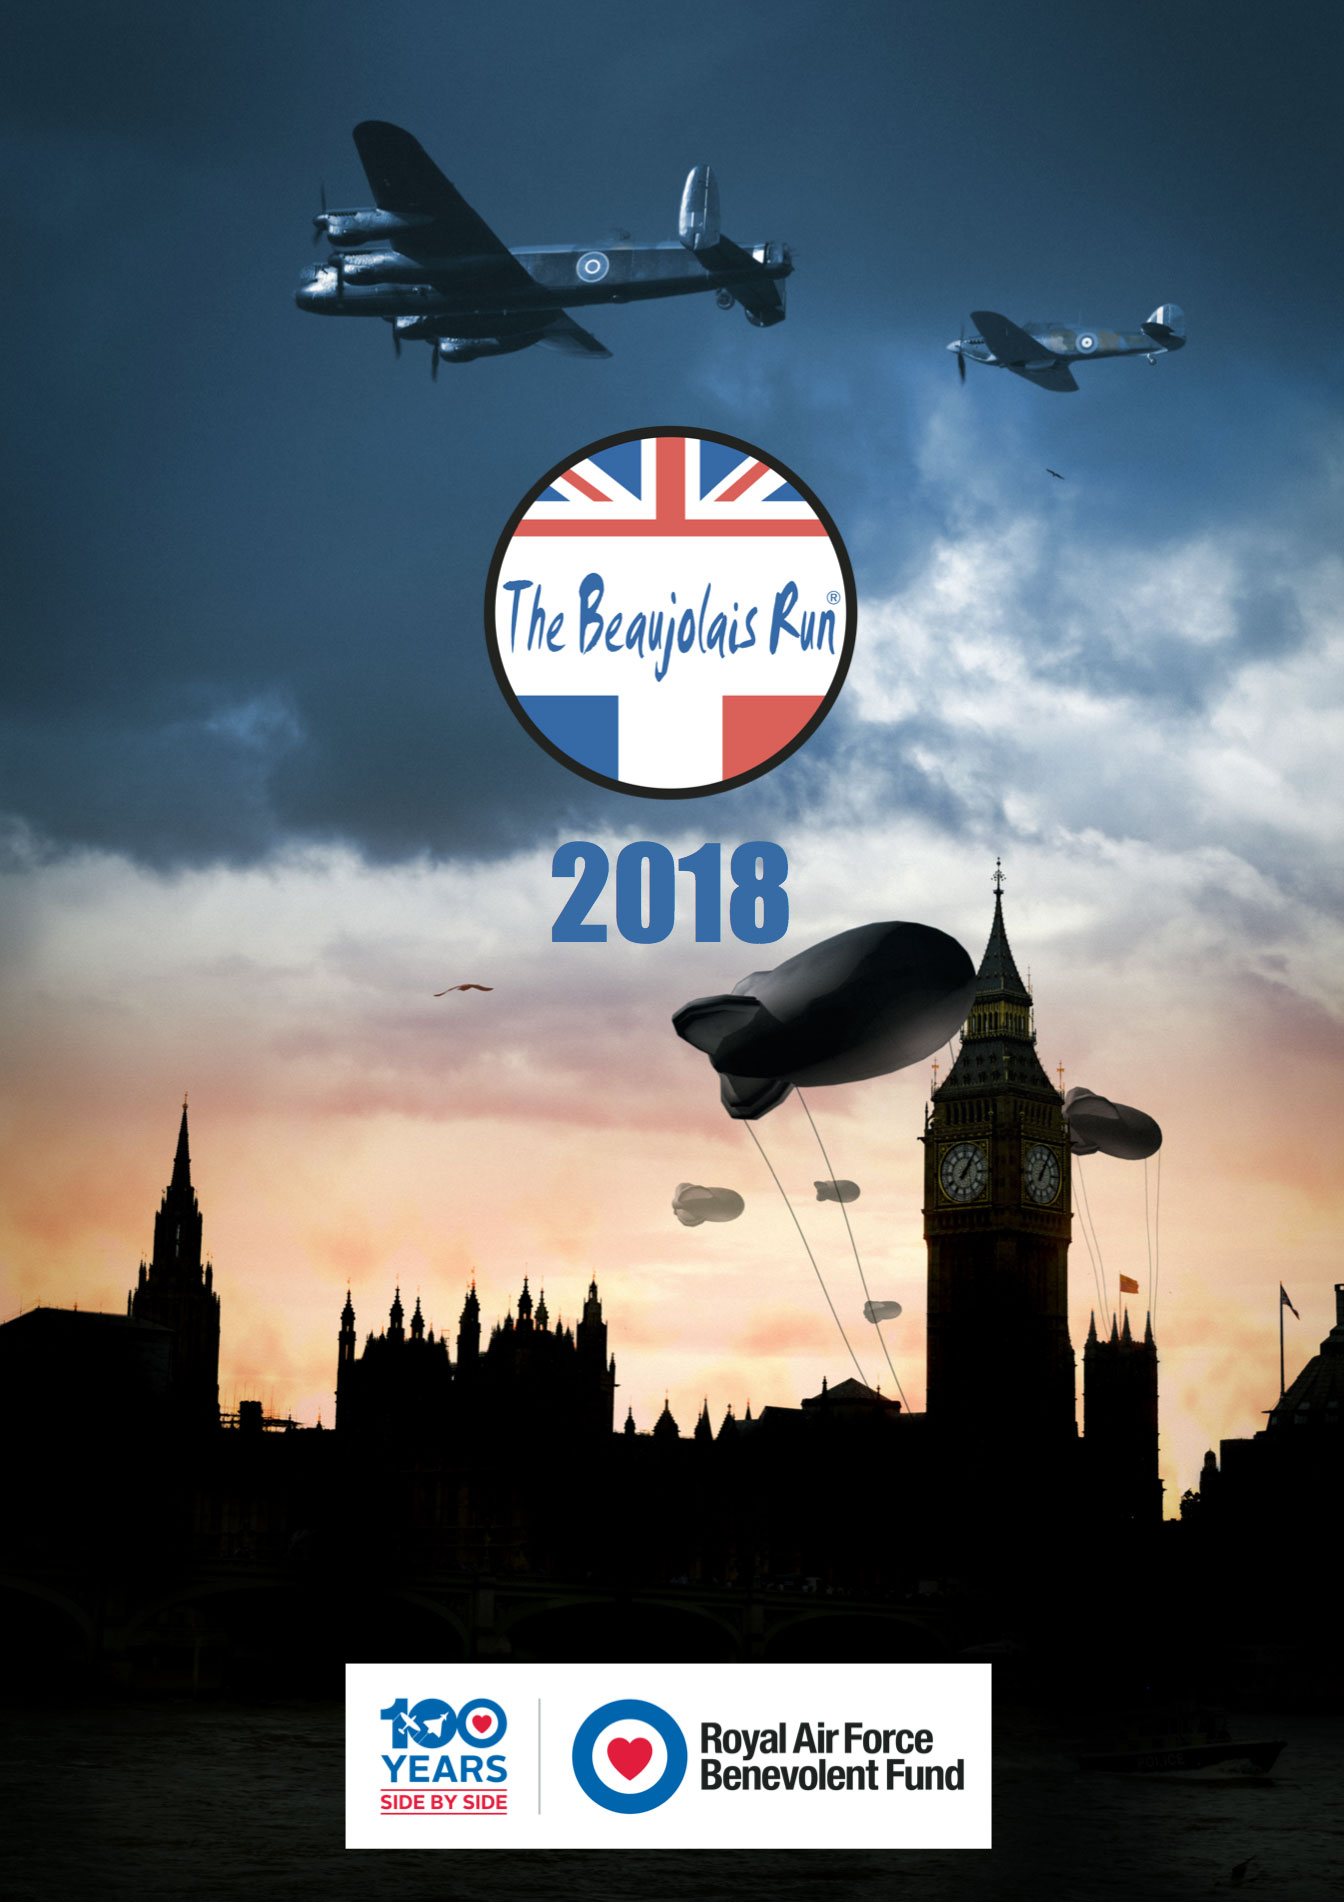 RAF Benevolent Fund Beaujolais Run 2018